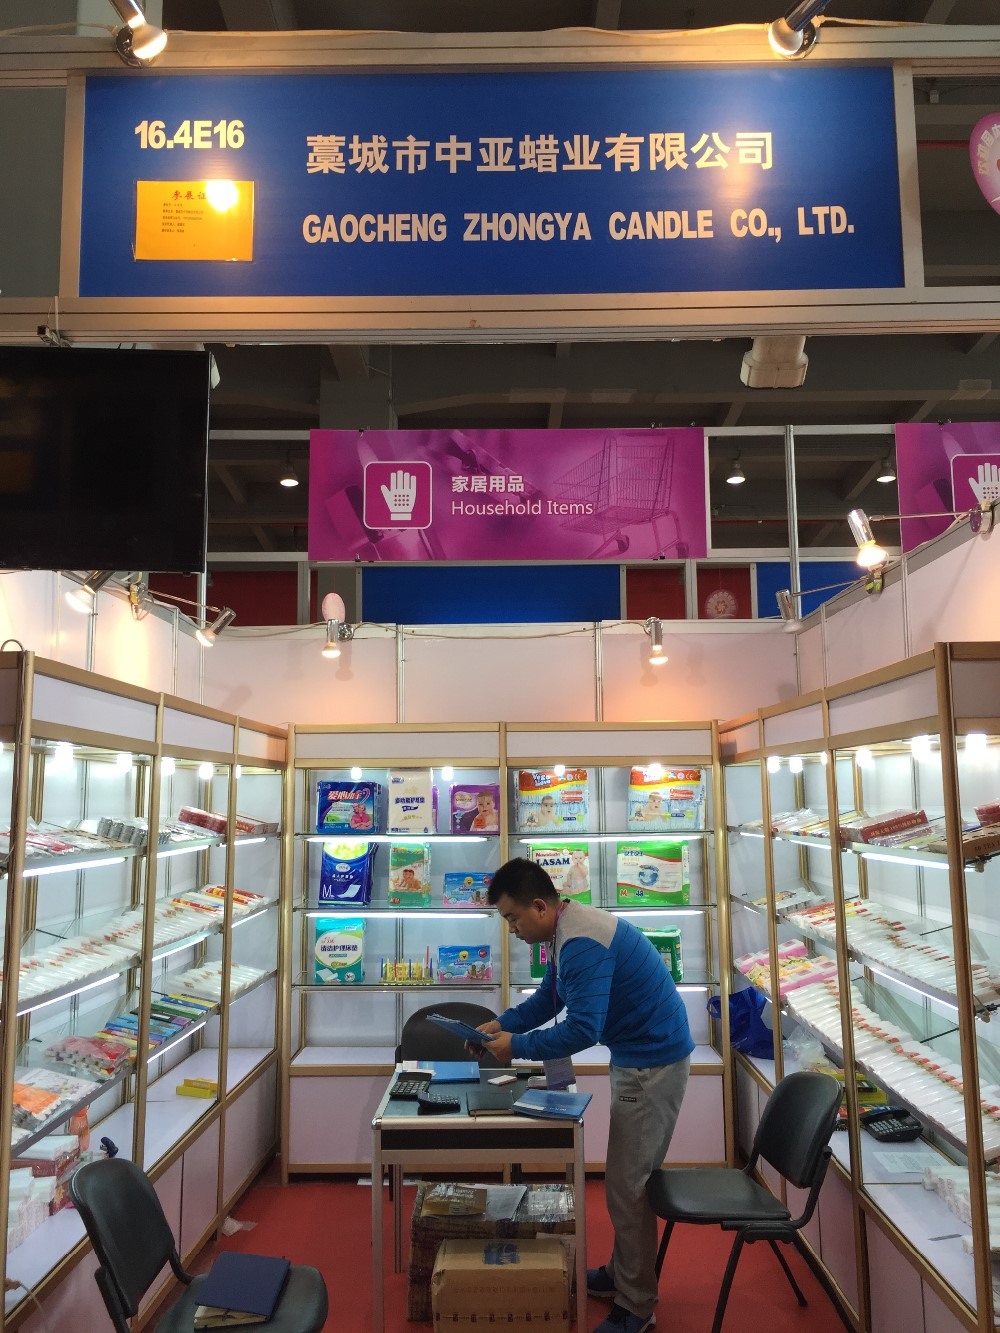 Canton Fair Veals Candles